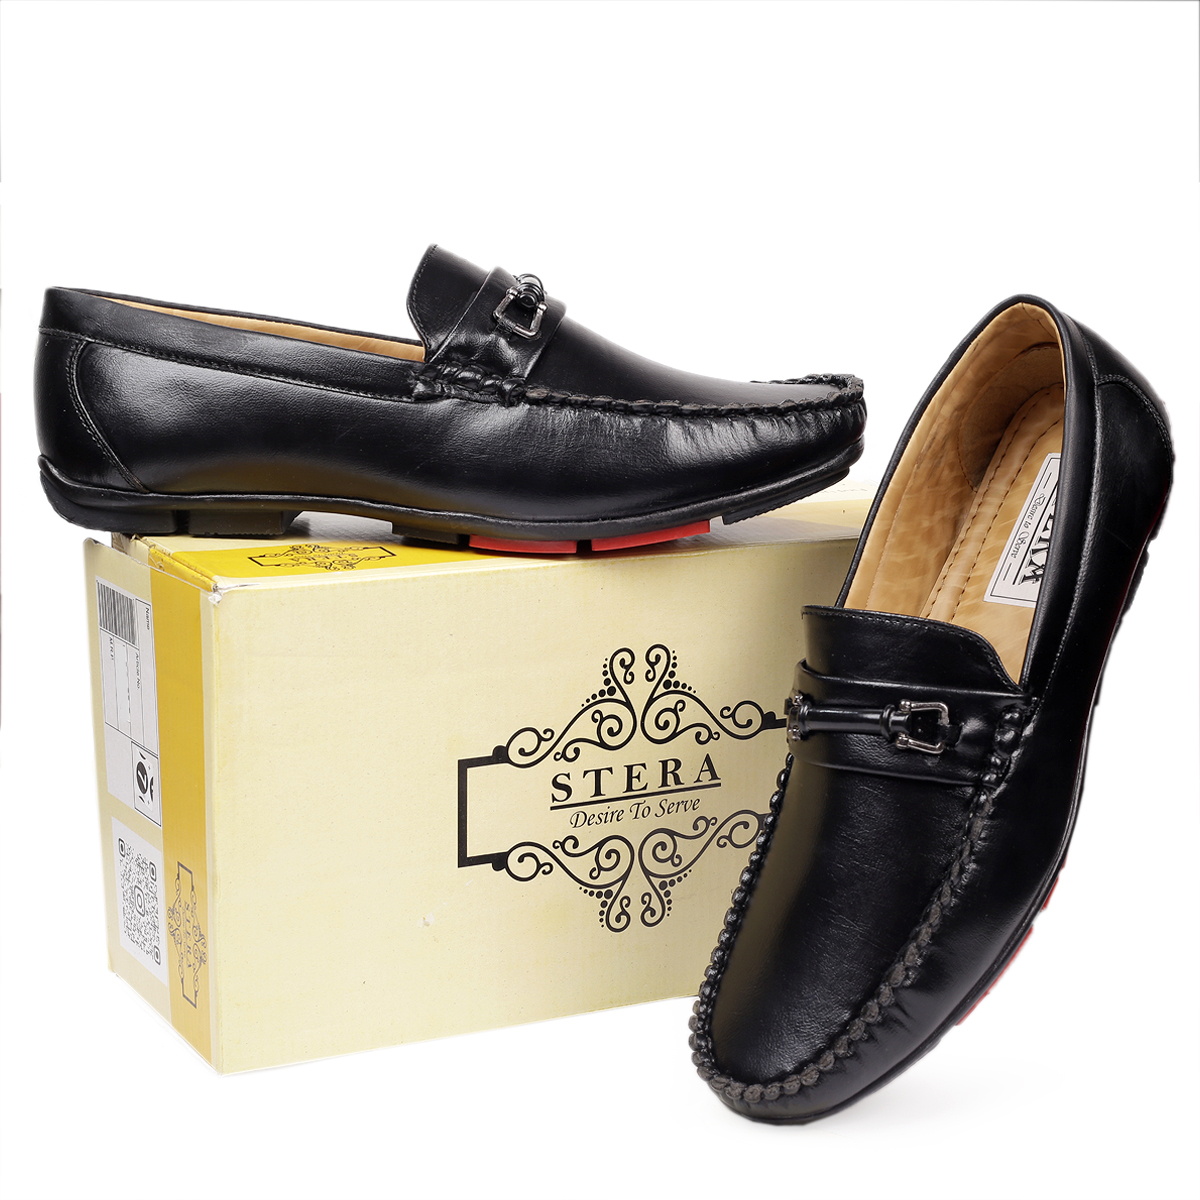 STERA MENS LOAFER SHOE NHT-3002 (BLACK, 6-10, 8 PAIR)